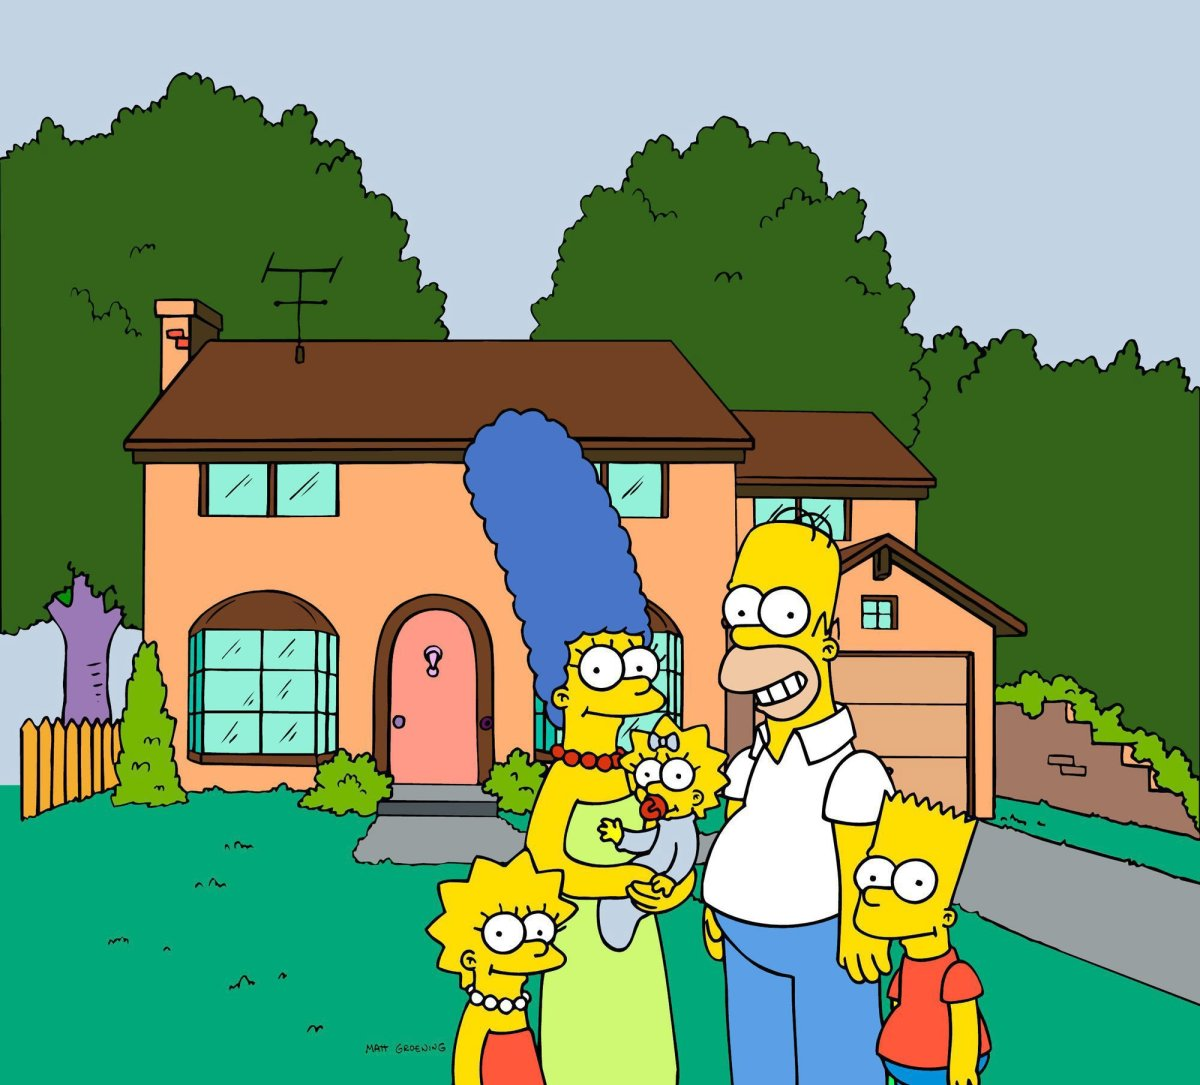 Creators and producers of 'The Simpsons' have chosen to pull an episode featuring a character voiced by Michael Jackson from circulation.